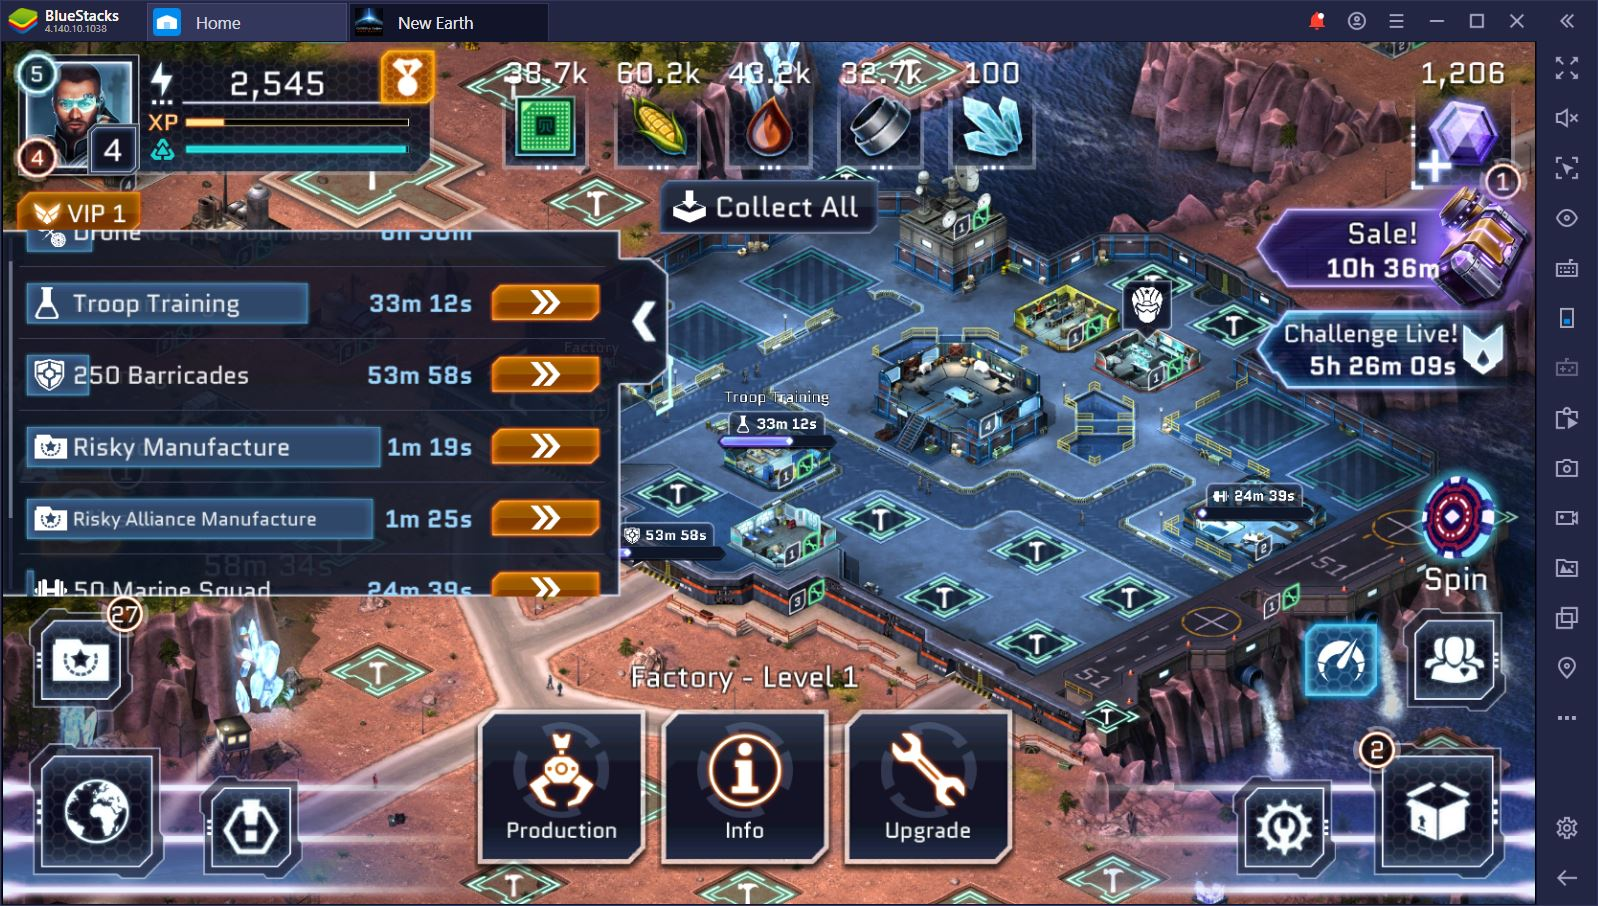 Operation: New Earth on PC – Tips and Tricks for Beginners